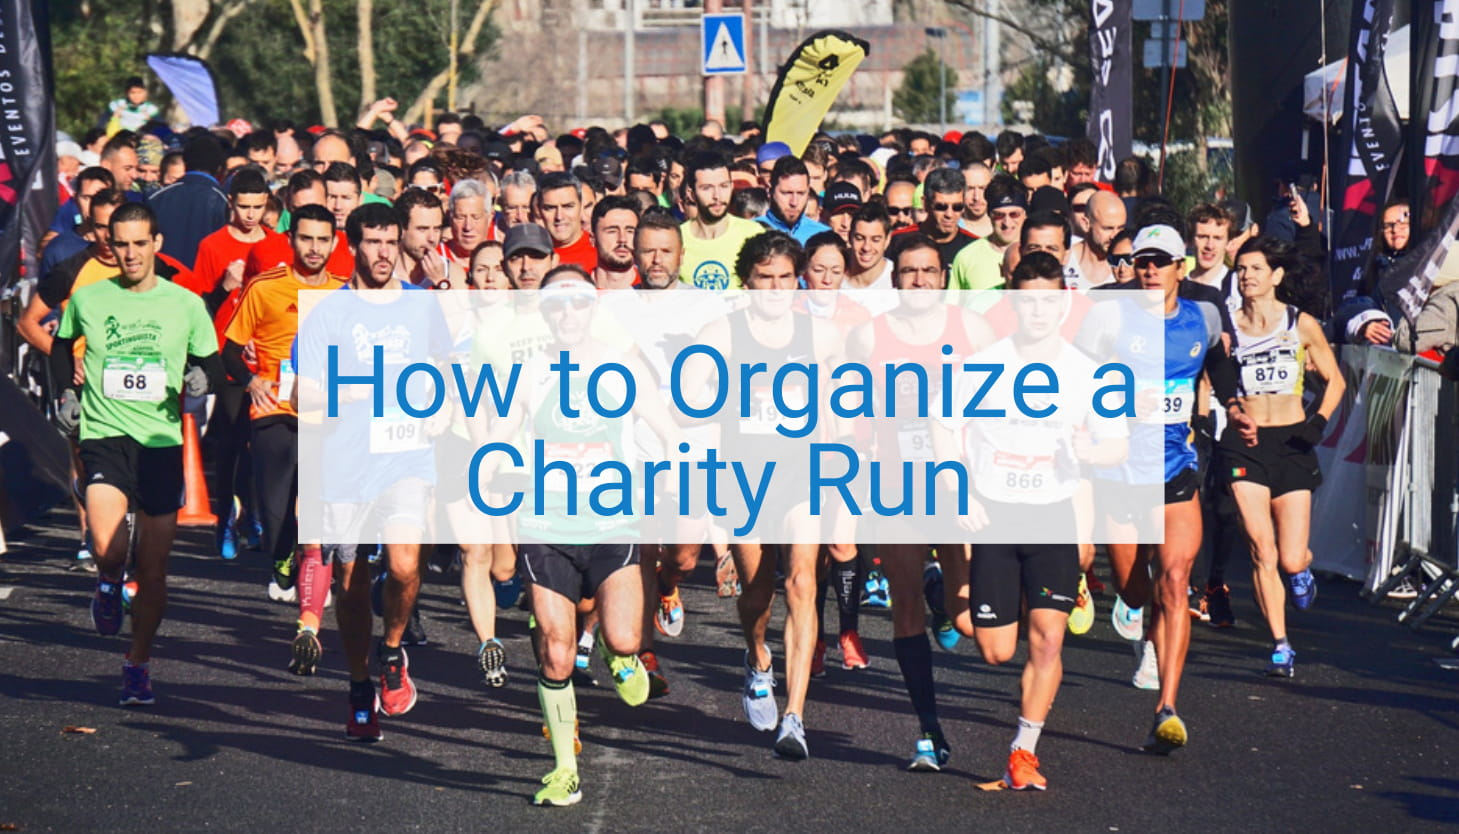 How to Organize a 5k Fundraiser for Charity Run: Step-By-Step